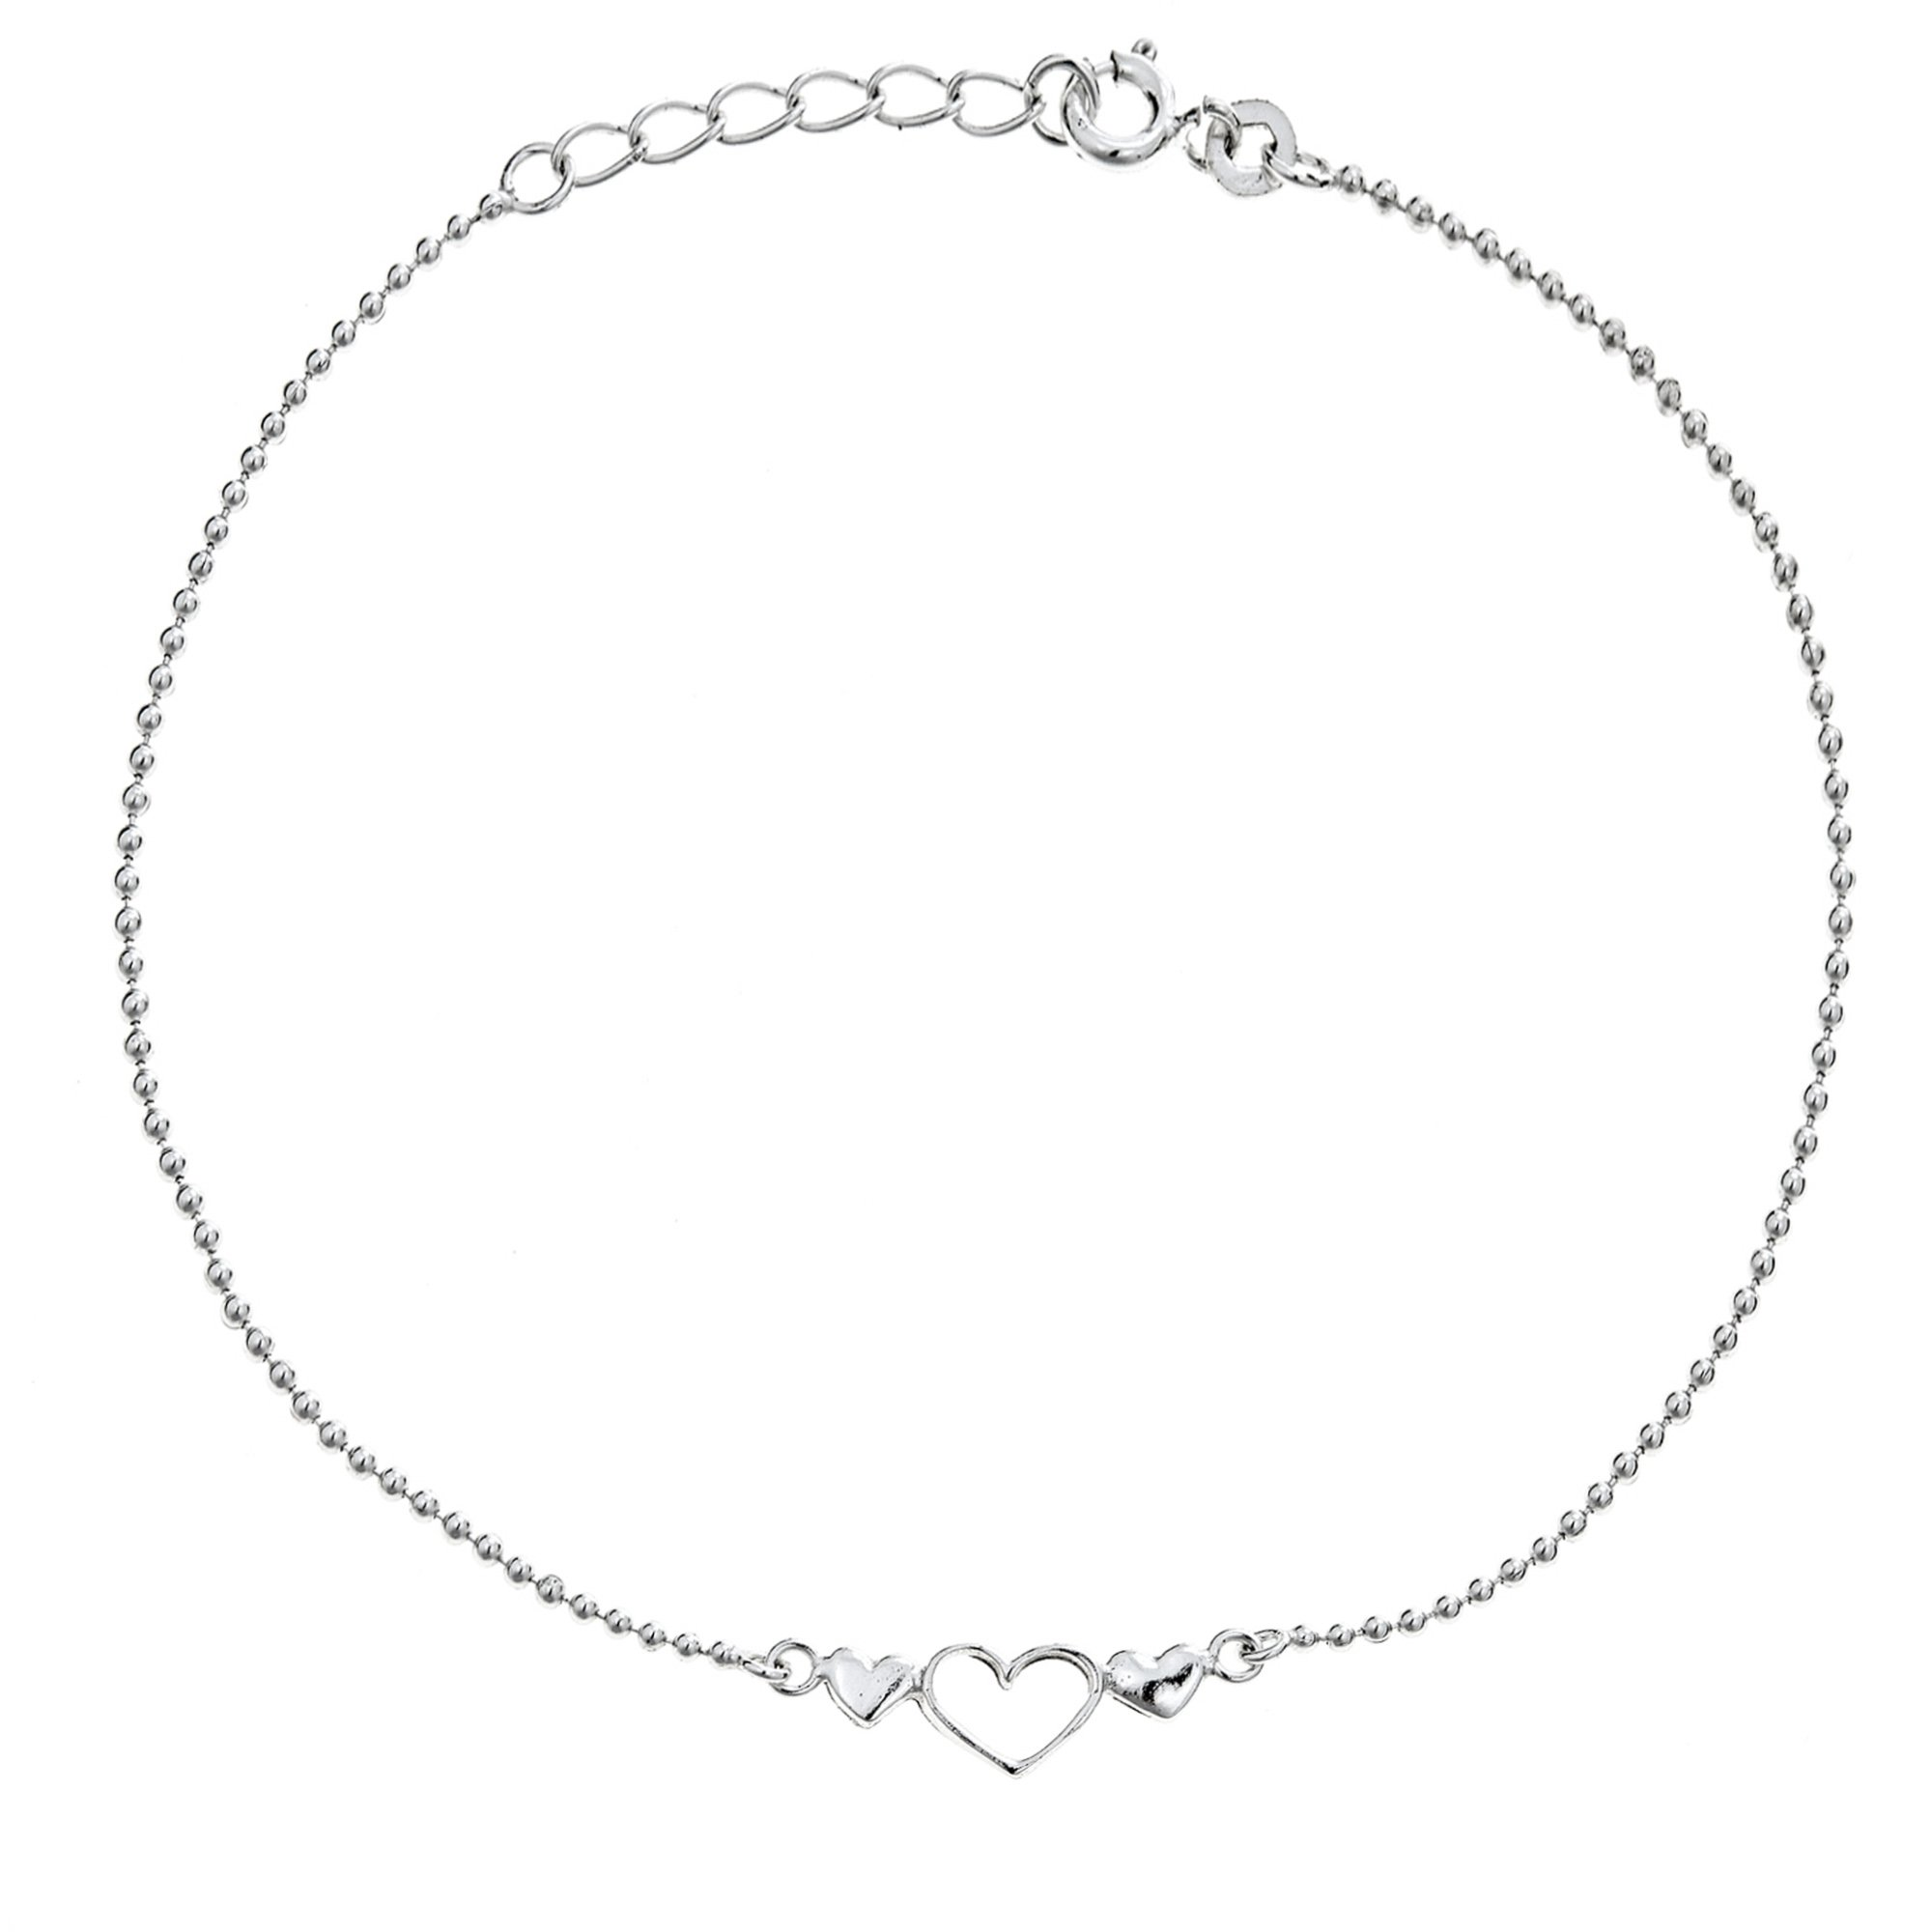 Sterling Silver Open Three Heart Beaded Anklet Adjustable 9-10 Inches